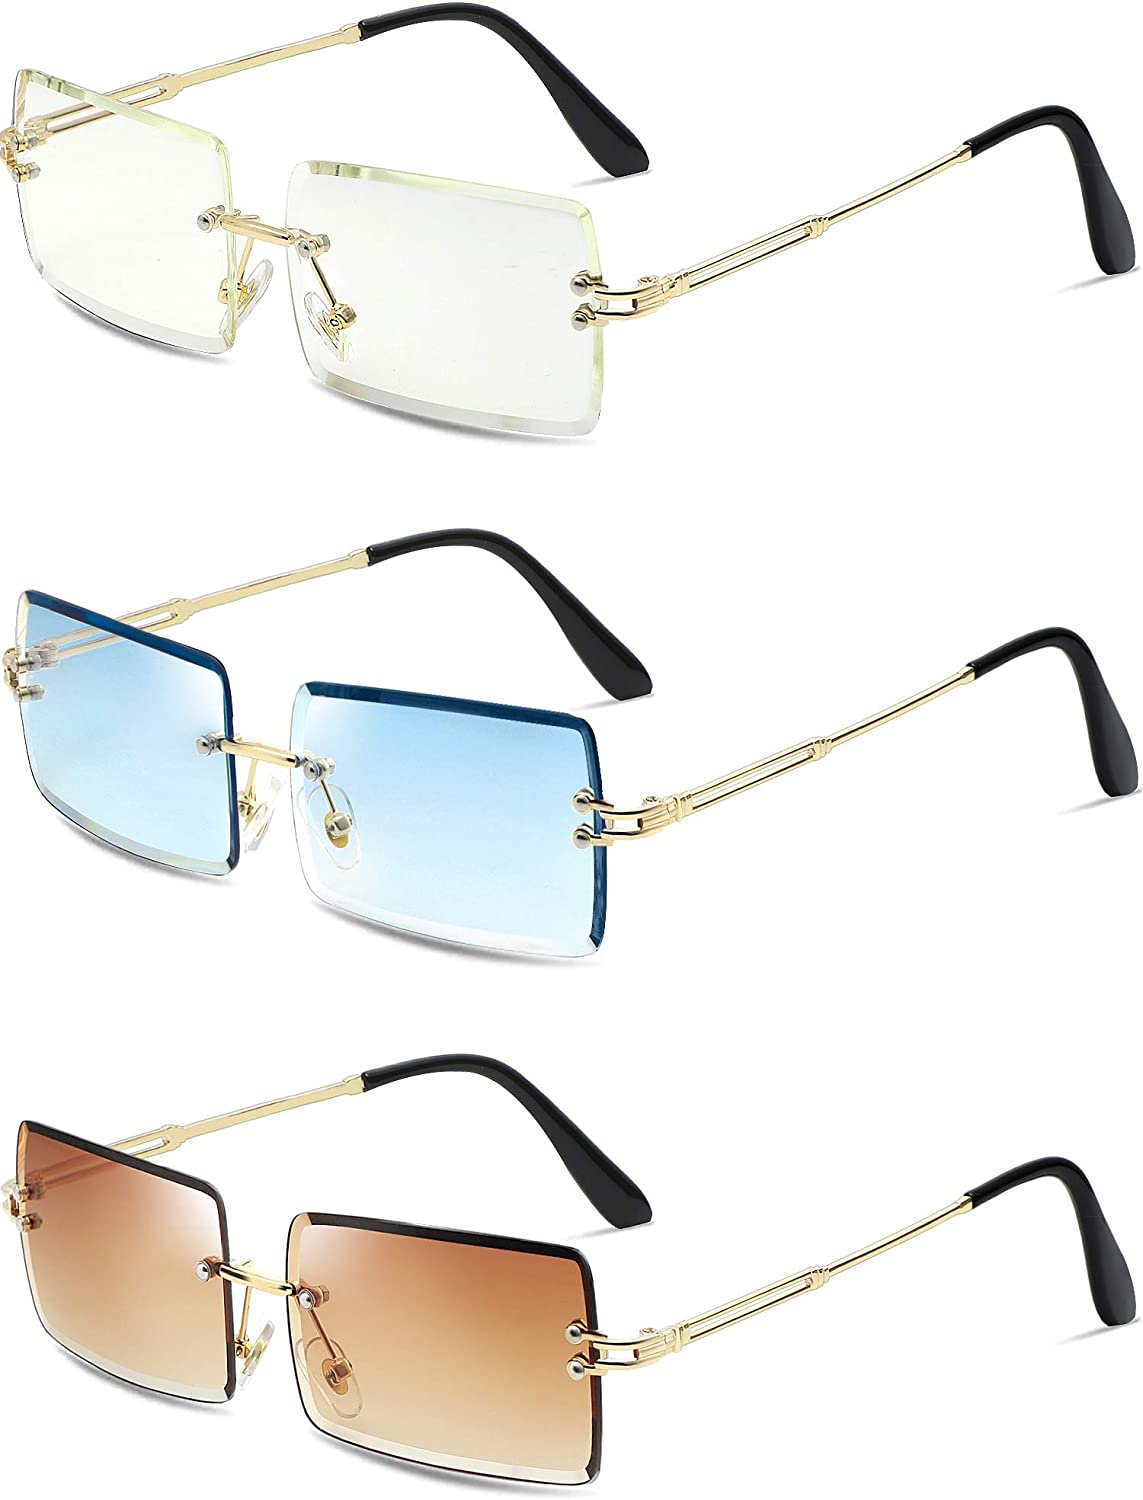 3 Pairs Clear Sunglasses for Women Men Rimless Rectangle Sunglasses Fashion Small Square Glasses Candy Color Transparent